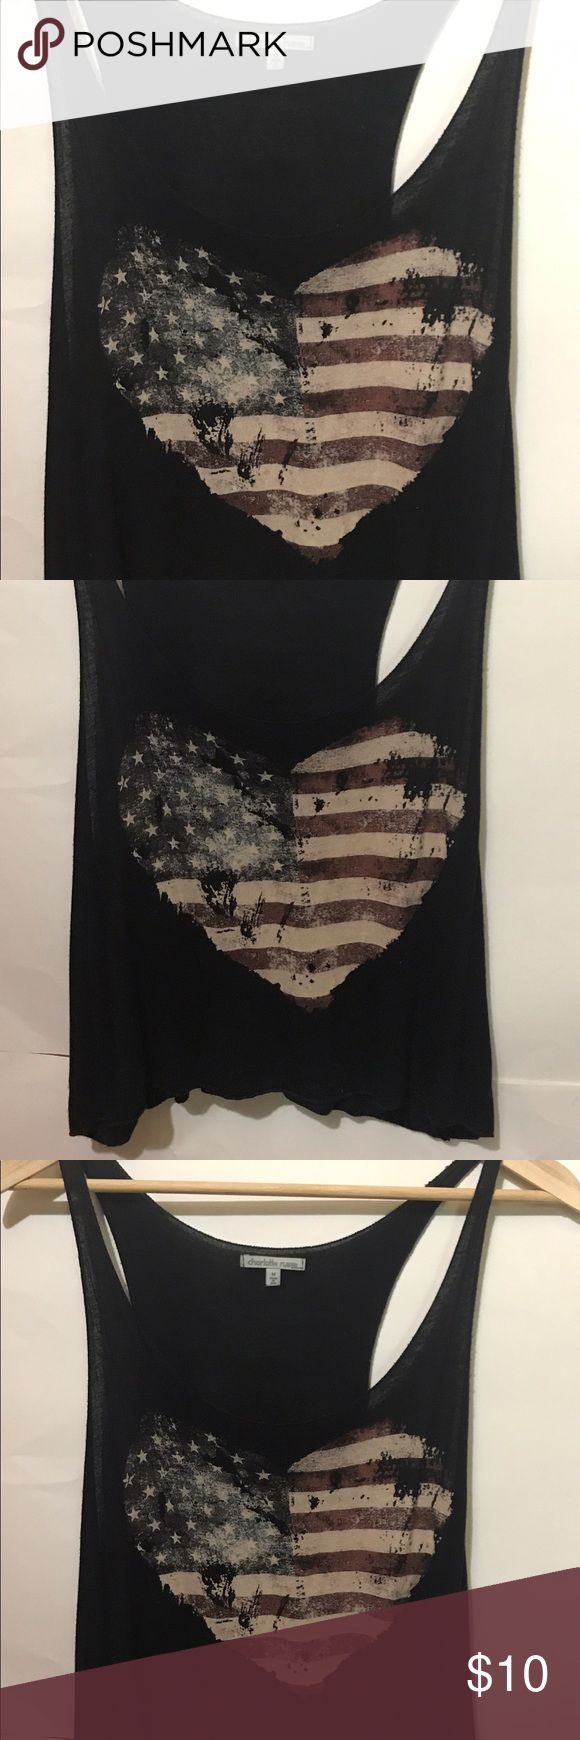 Woman Black Top Cute US Heart Flag Charlotte Russe Amazing Black Top I love this shirt a lot of memories but now dont  fix me any more 😊     💰Accept Offers💰   ✈️Fast ship✈️  ❌No returns❌  😘Thanks for visit my closet😘      ----------------------------------------------------------- Lenght 45 cm Width   40 cm #blouse #tshirt #top #rings #cat #cover #iphone7 #women #babydoll #sexy #glasses #hat #black #red #pink  #summer #vintage #bracelet #watch #gold #choker #earrings #hair #sunglasses…